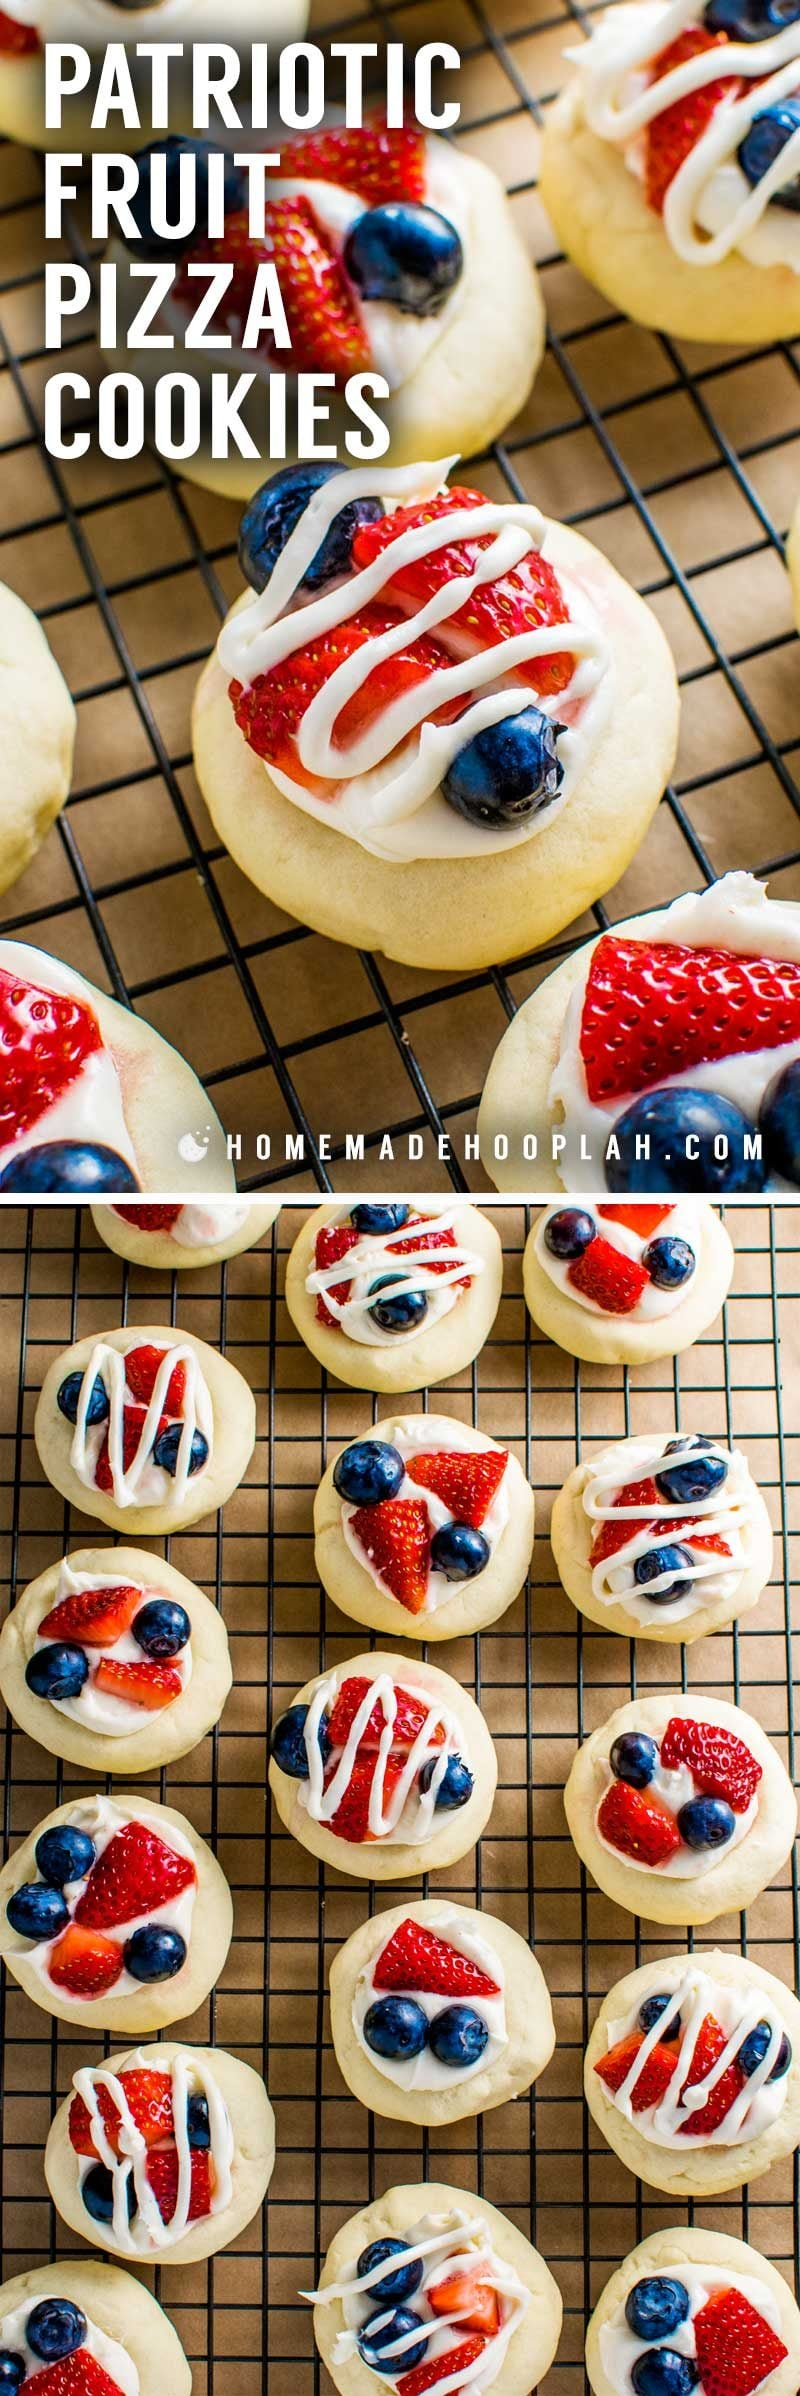 Patriotic Fruit Pizza Cookies! Celebrate the red, white, and blue holidays with these festive soft butter patriotic cookies topped with cream cheese frosting, chopped strawberries, and blueberries. | HomemadeHooplah.com